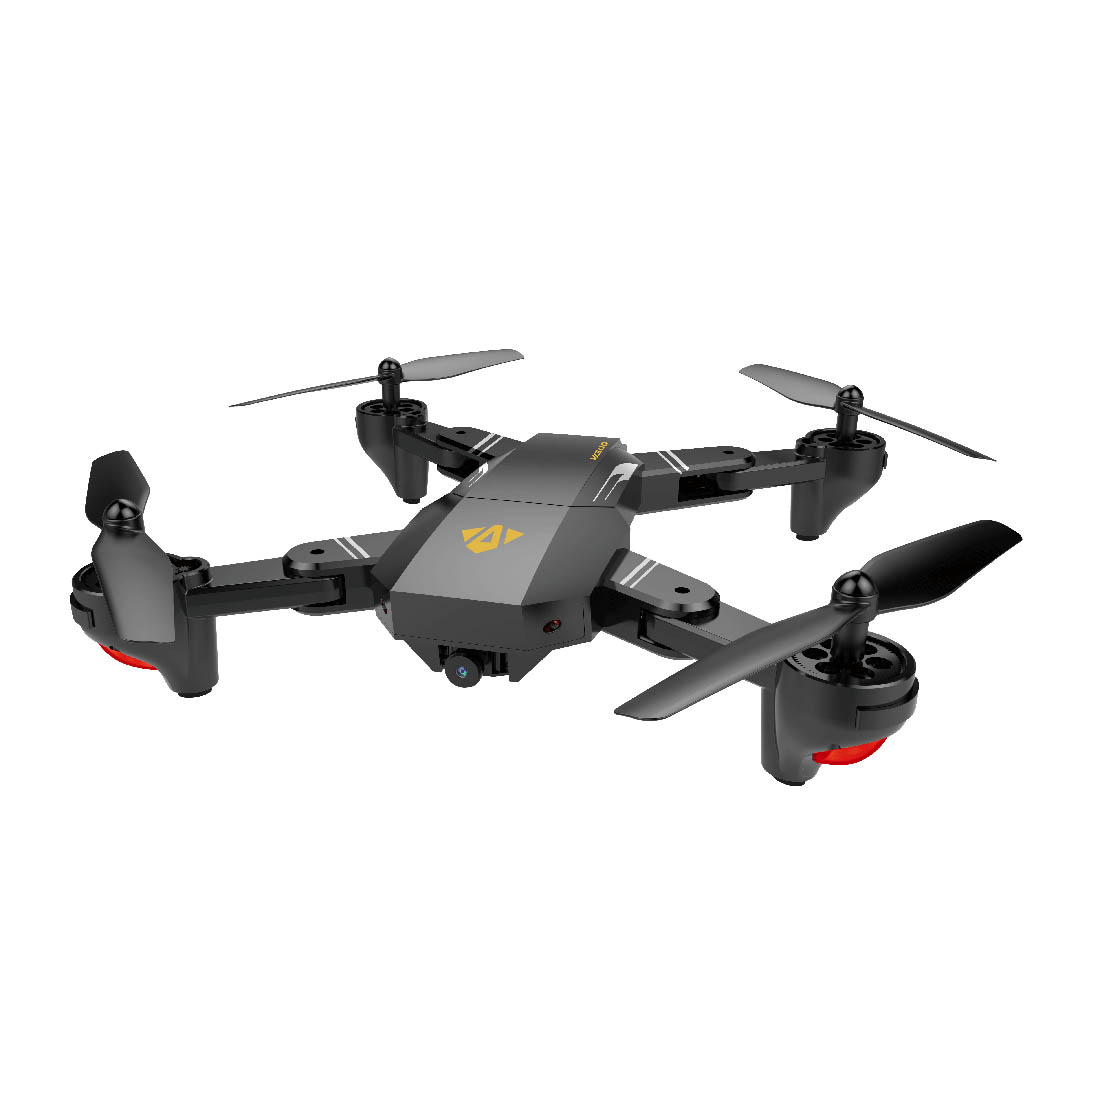 VISUO XS809W WiFi FPV Foldable RC Quadcopter with Camera , 2.4GHz 6-Axis Gyro Remote Control Drone Gravity Sensor Altitude Hol